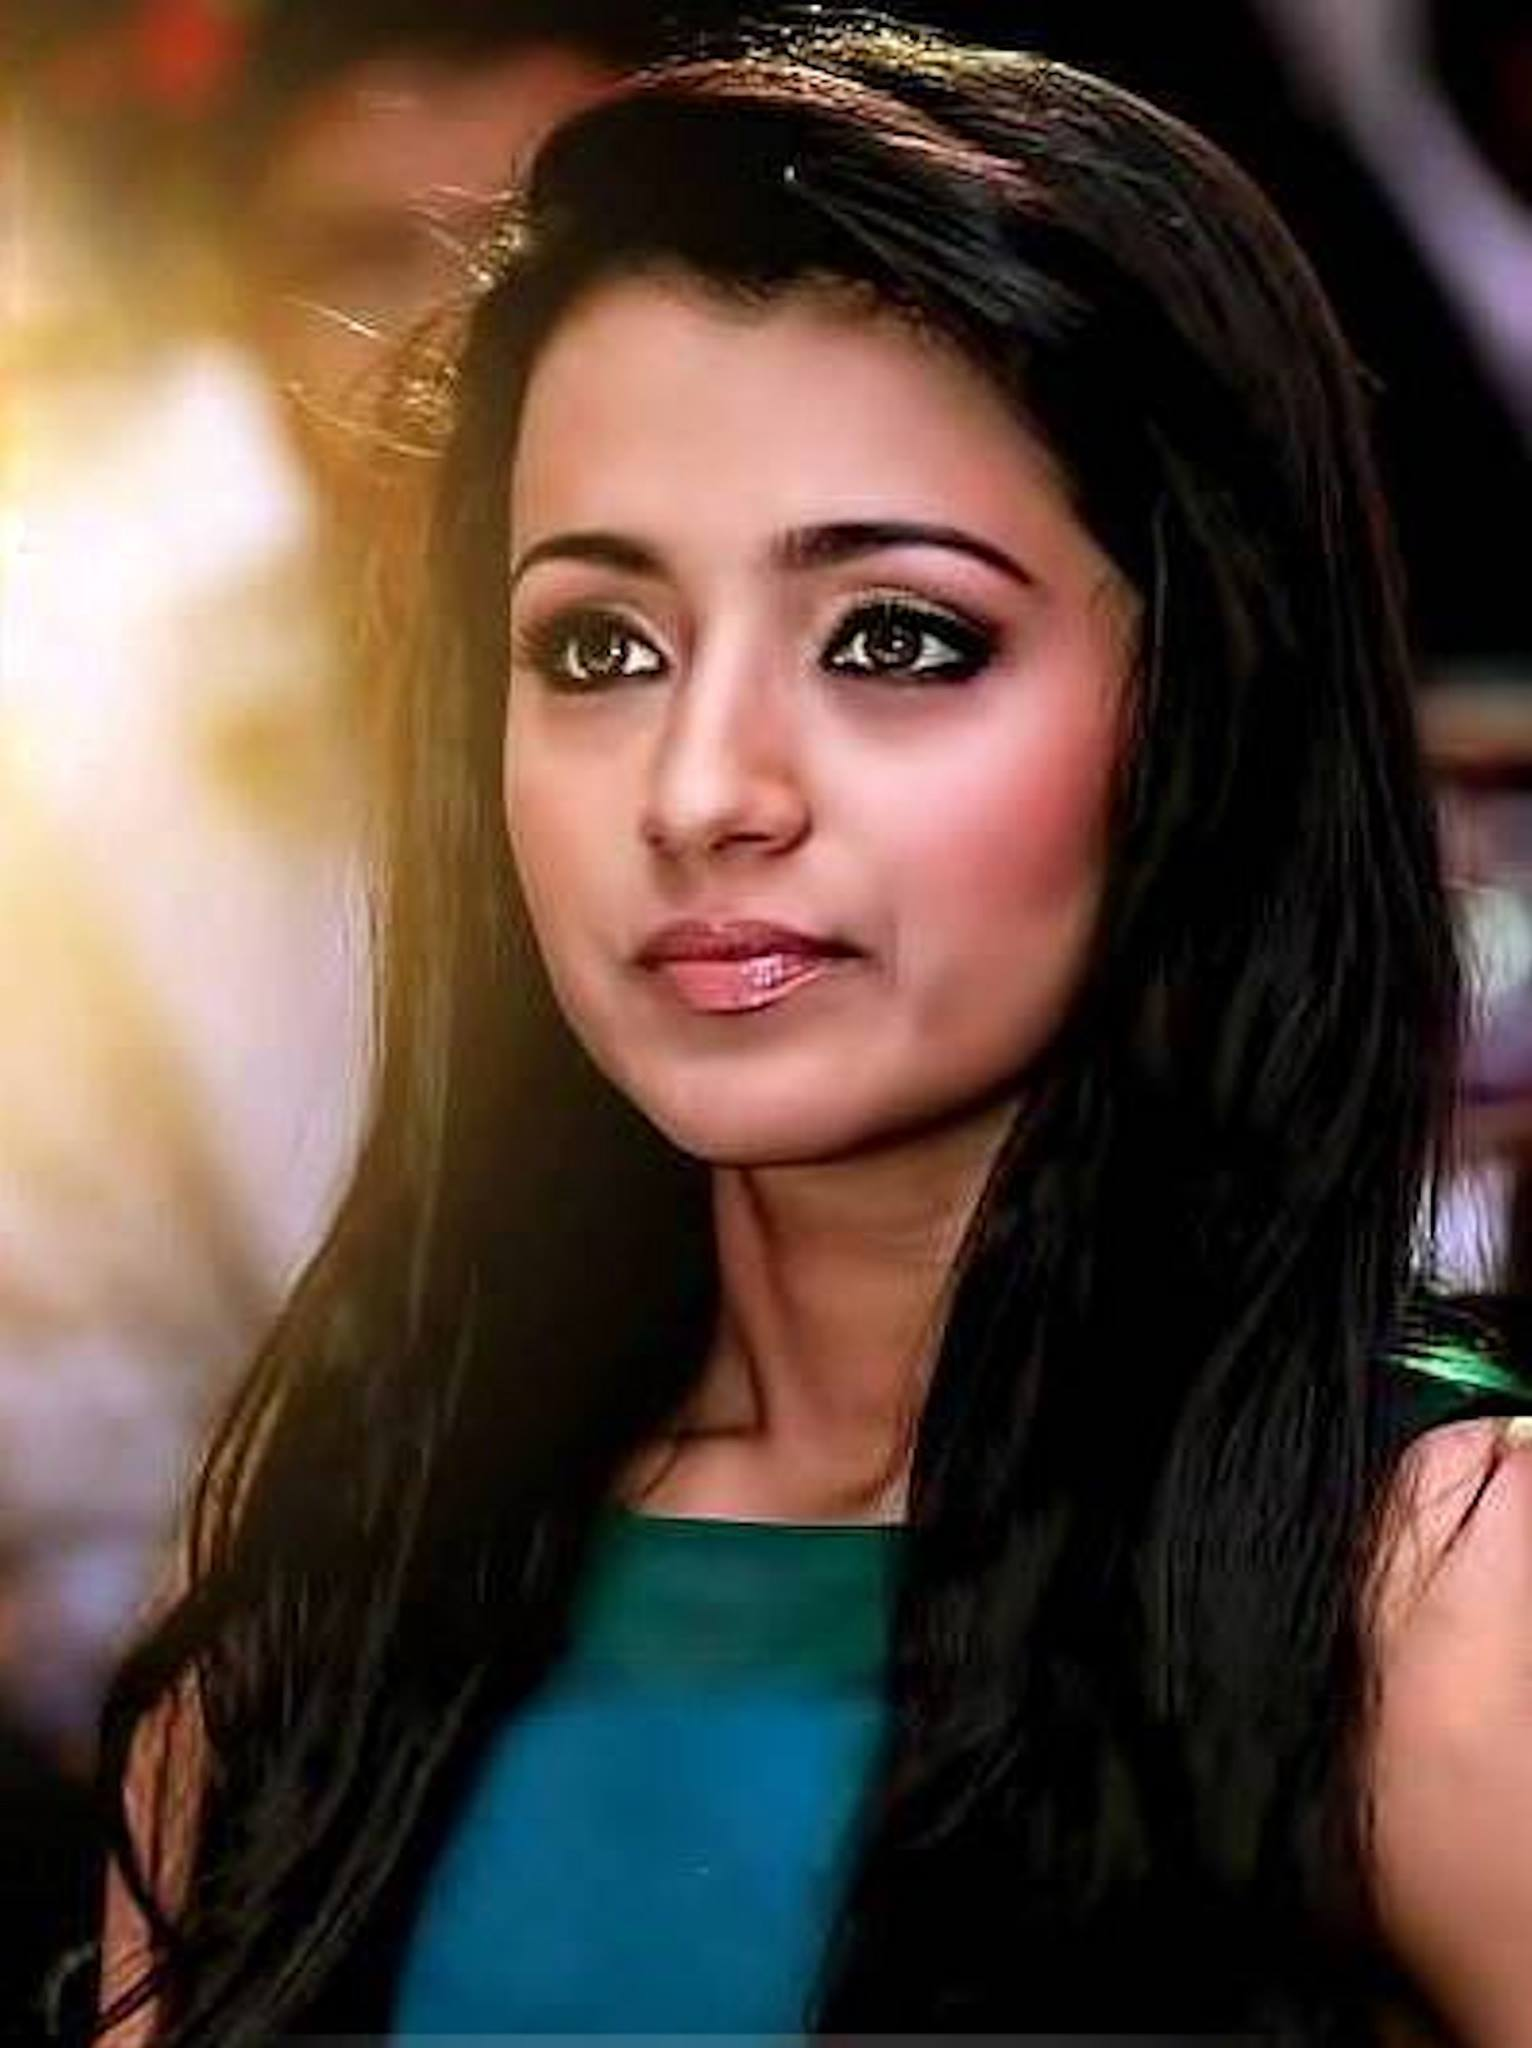 Cute Tamil Actress Wallpapers 25 Best Of Trisha Krishnan Actress Hot Unseen Wallpapers